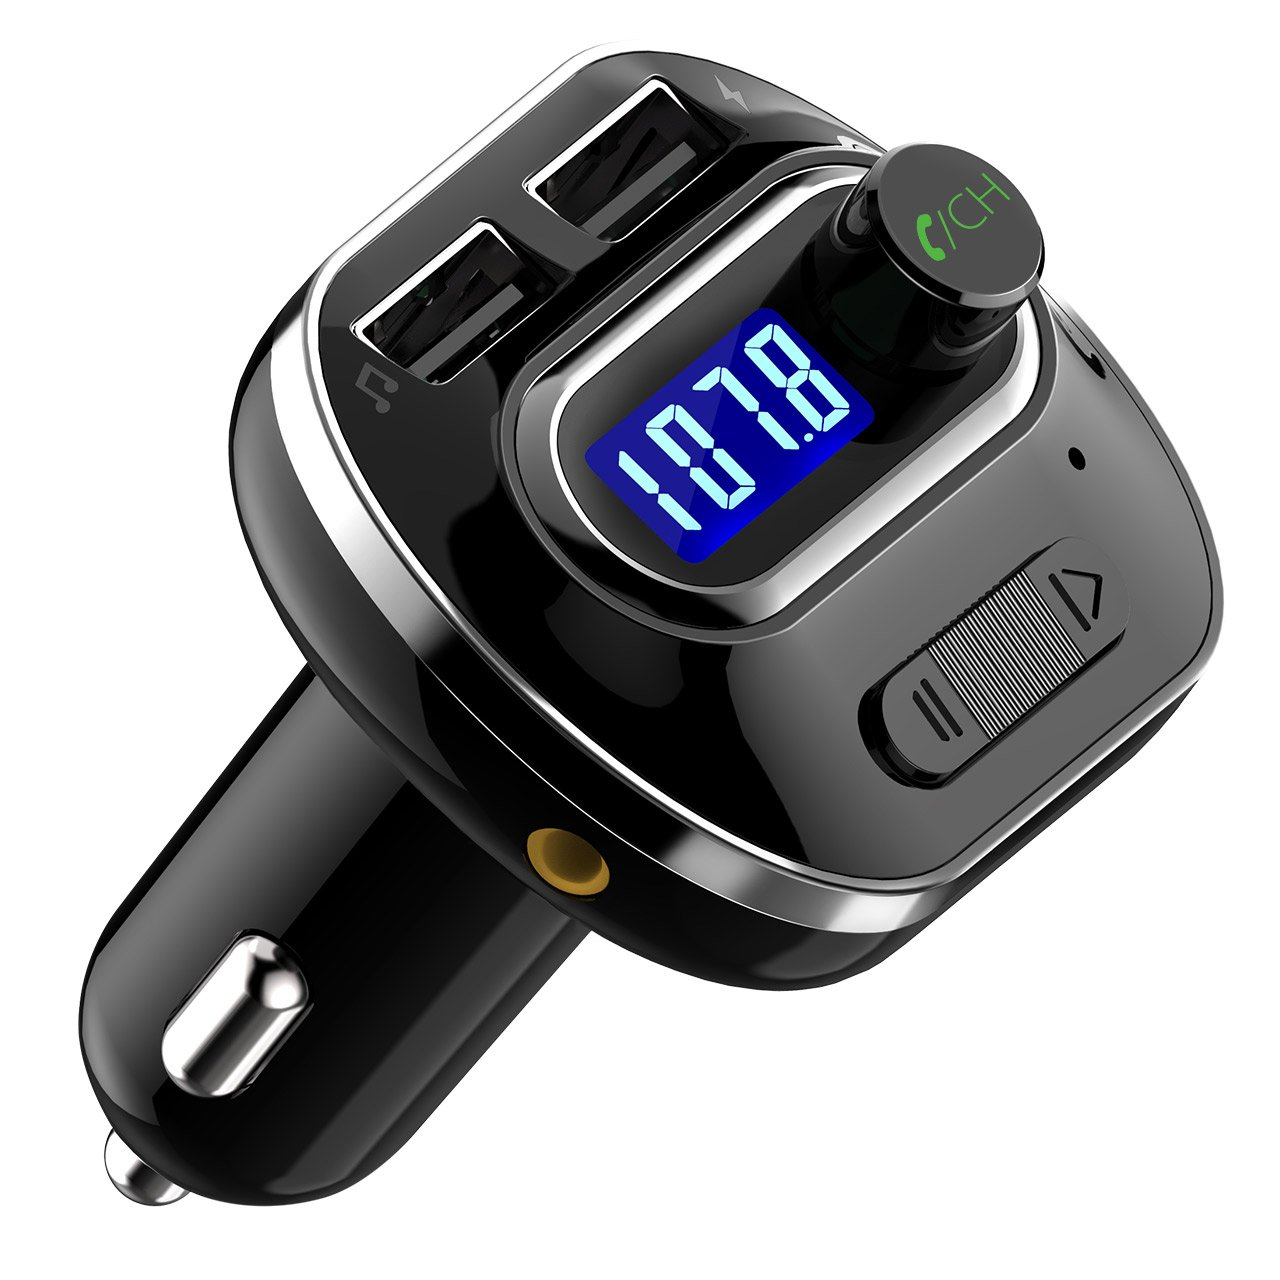 (Upgraded Version) VicTsing V4.1 Bluetooth FM Transmitter for Car, Wireless Radio Transmitter Adapter with Music Player Support Aux Output Input, Tf Card and U-Disk, Hands Free and Dual USB Ports